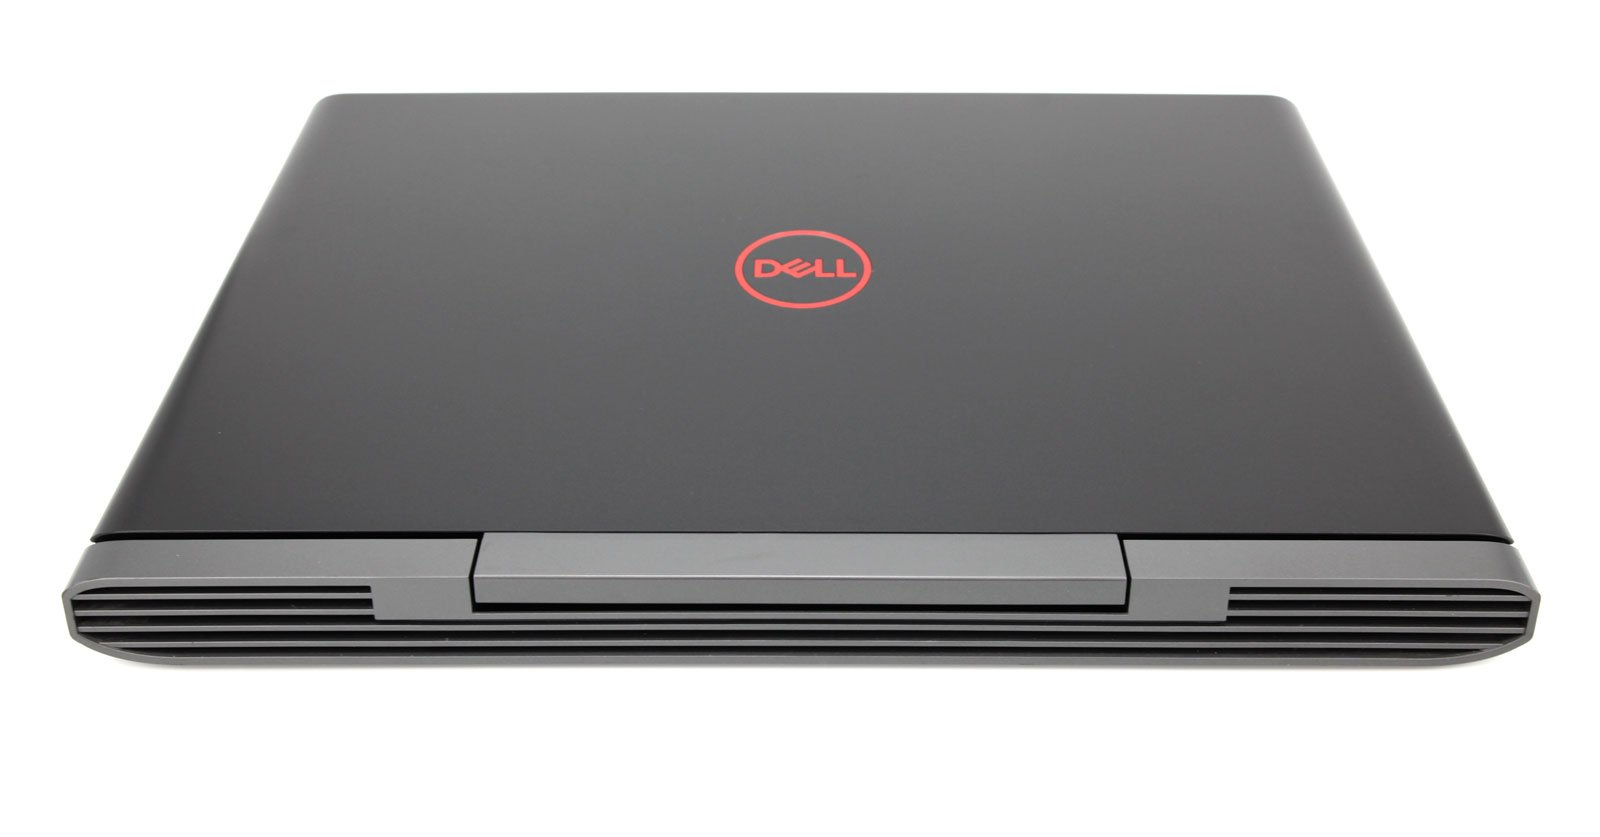 Dell 15 7577 4K Gaming Laptop: i7-7700HQ, GTX 1060 Max-Q, 512GB & HDD, 16GB RAM - CruiseTech